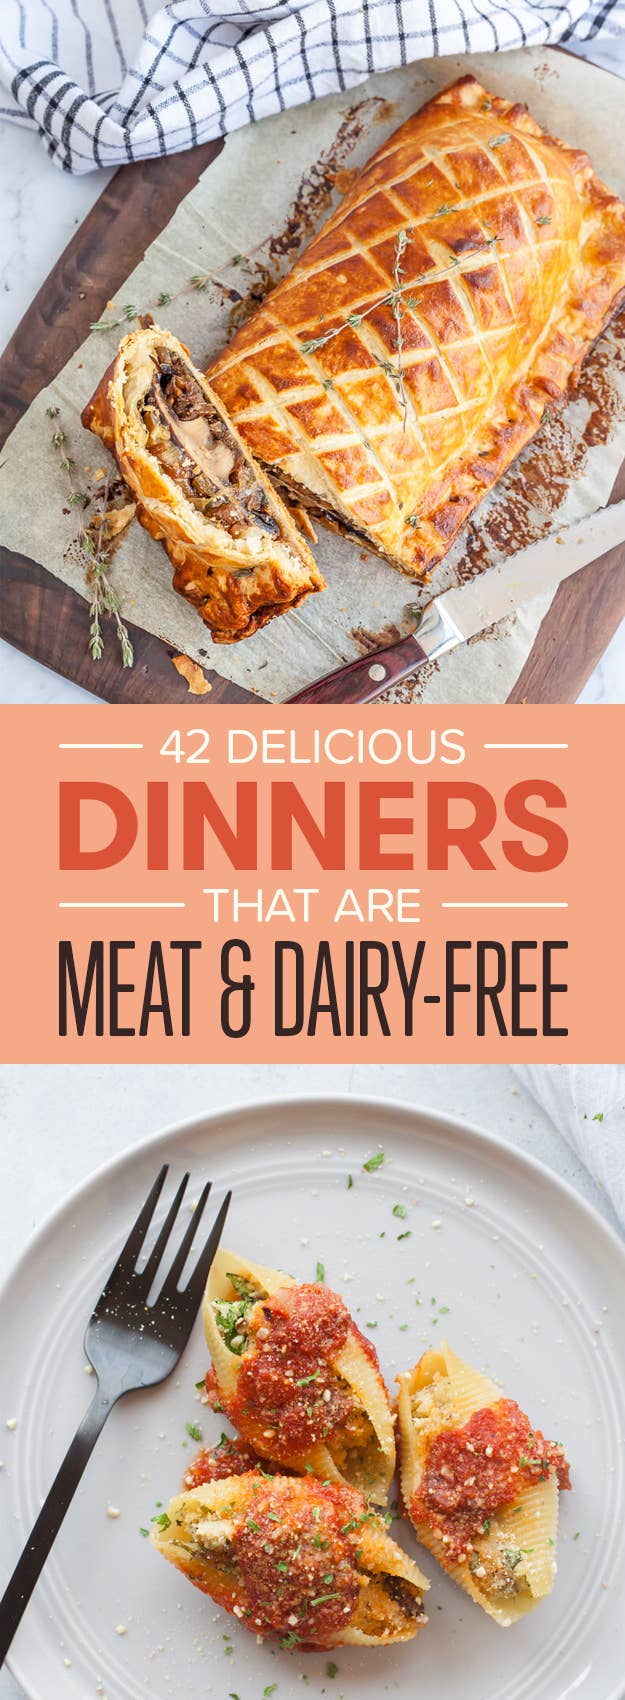 42 Dinner Ideas If You Re Trying To Cut Back On Meat Or Dairy